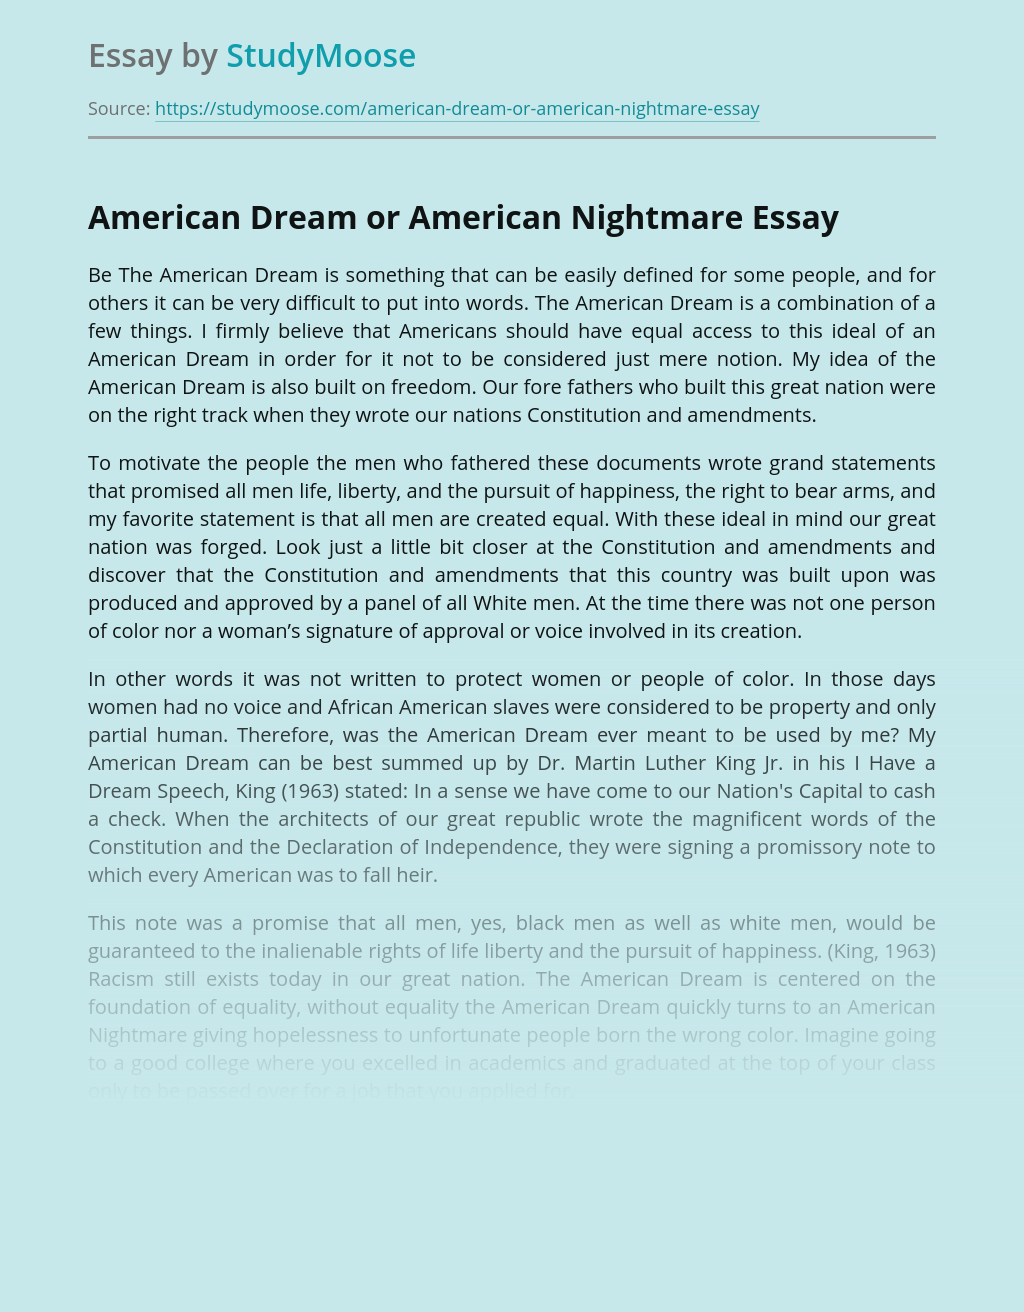 American Dream or American Nightmare